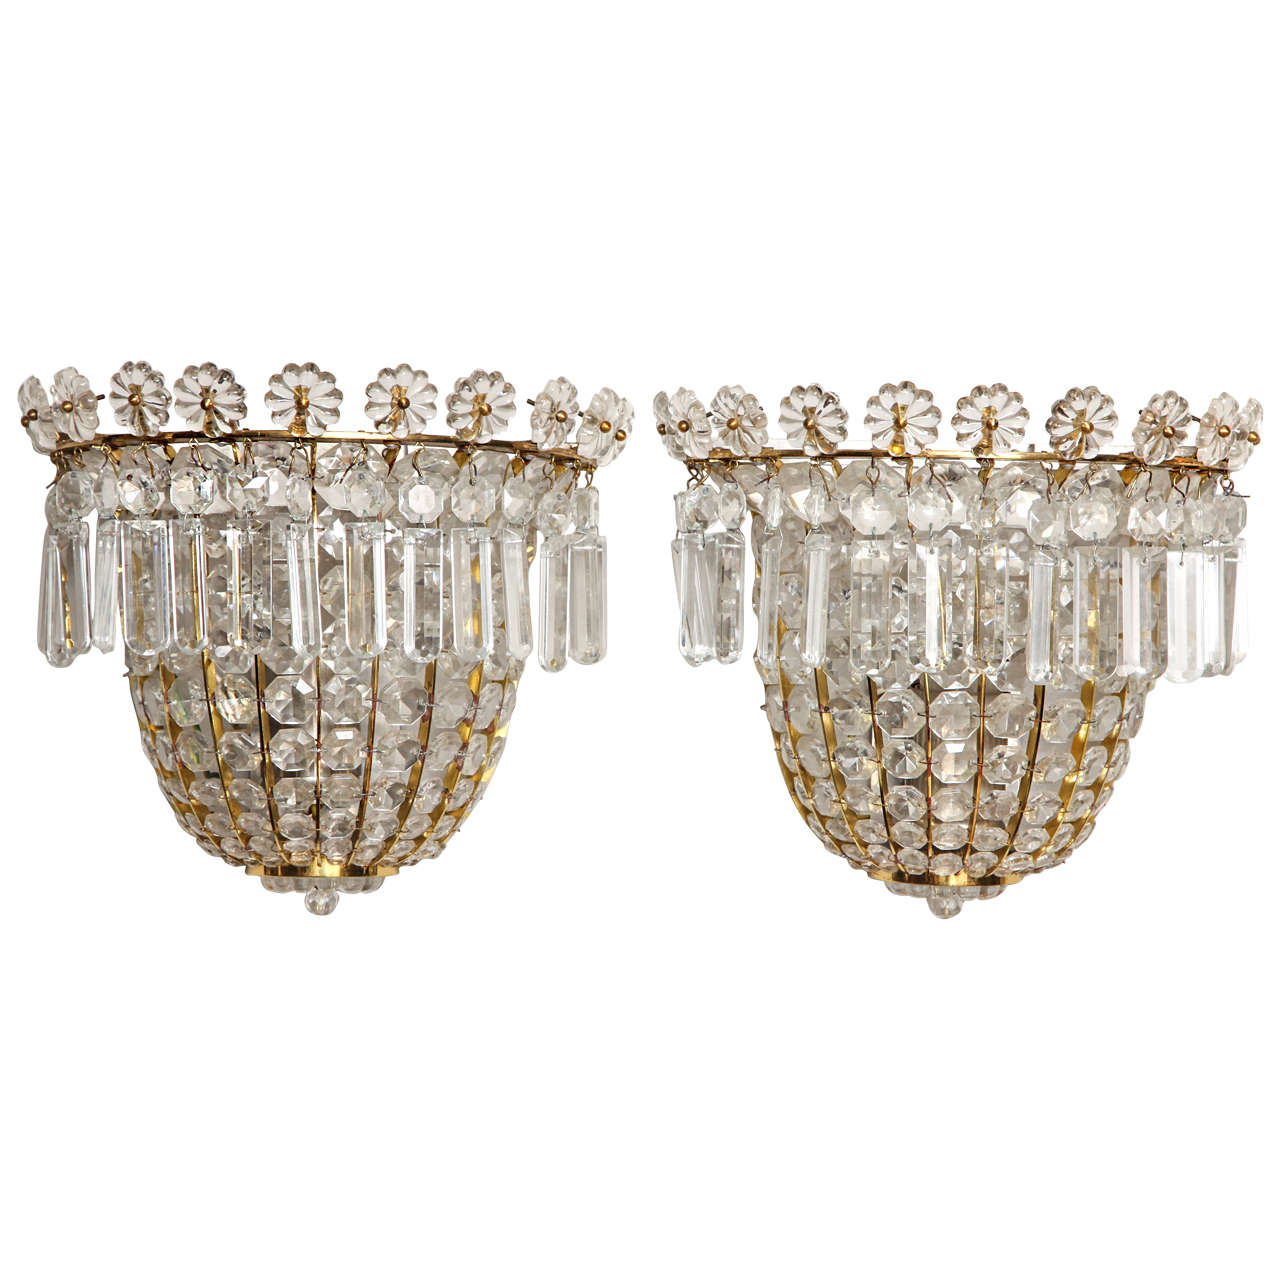 Beaded Crystal Wall Sconces : A Pair of Bagues Style Crystal Beaded Wall Sconces at 1stdibs